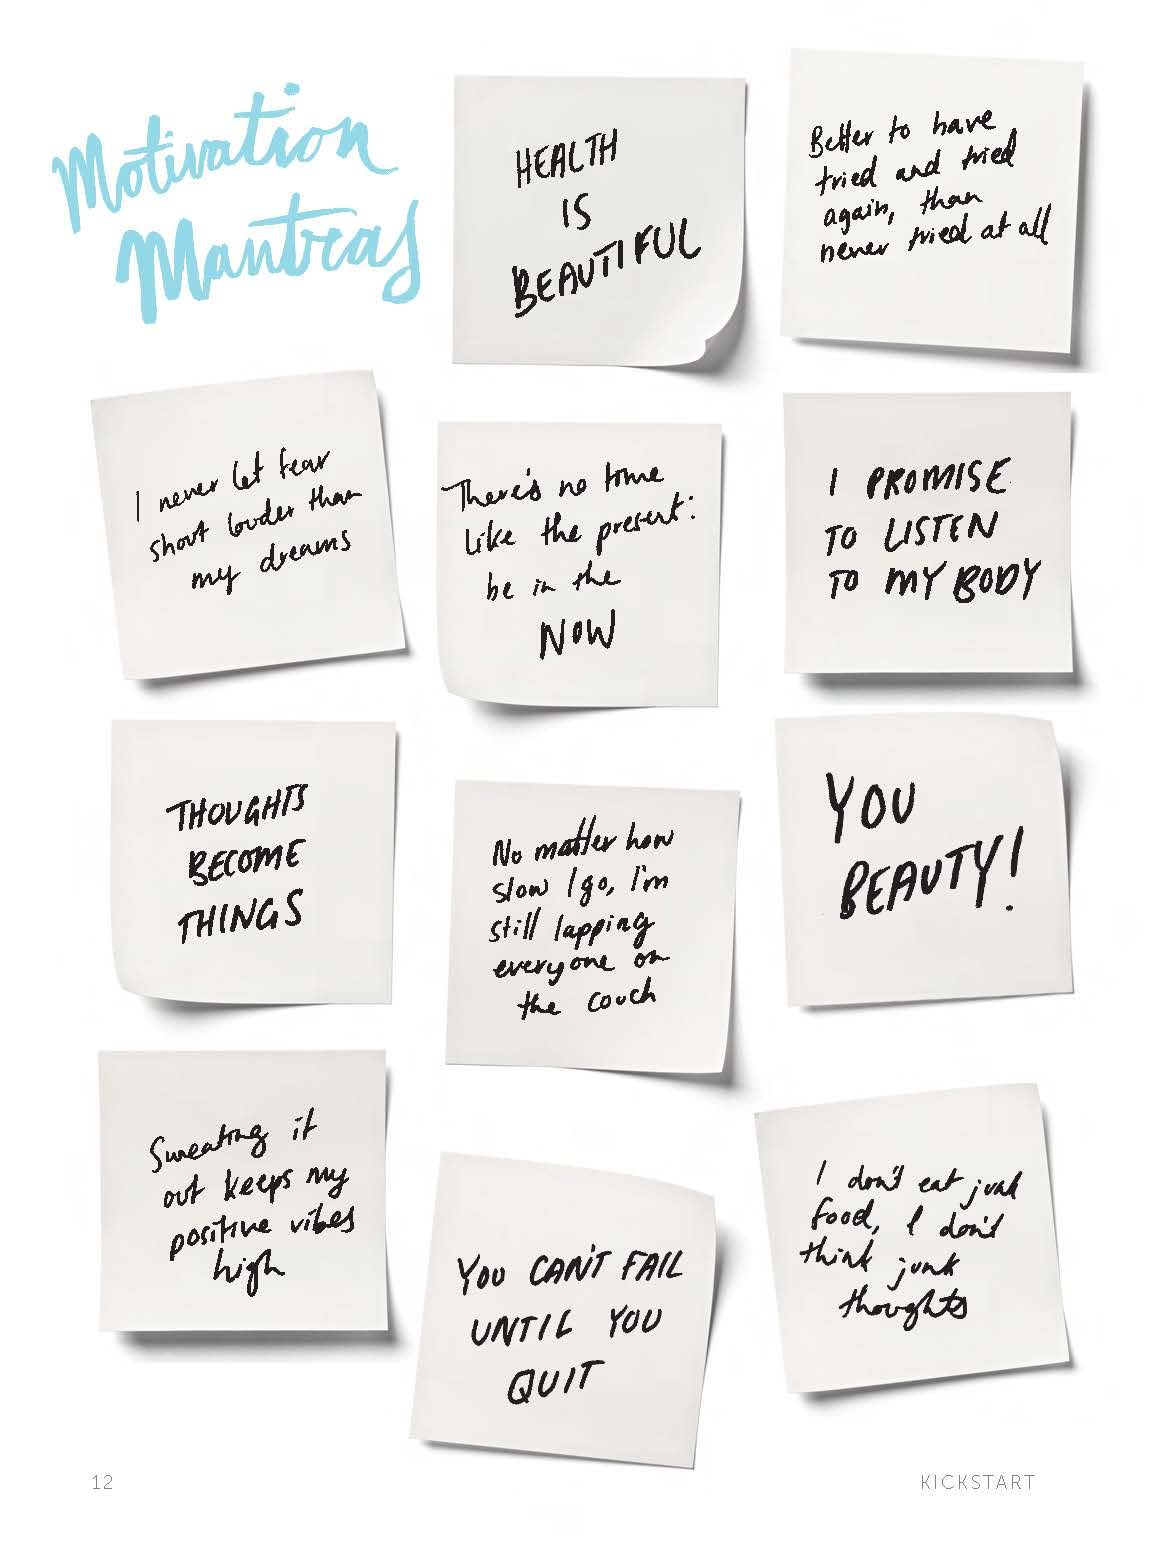 Motivation mantras from Tiffiny Hall's new book You Beauty!